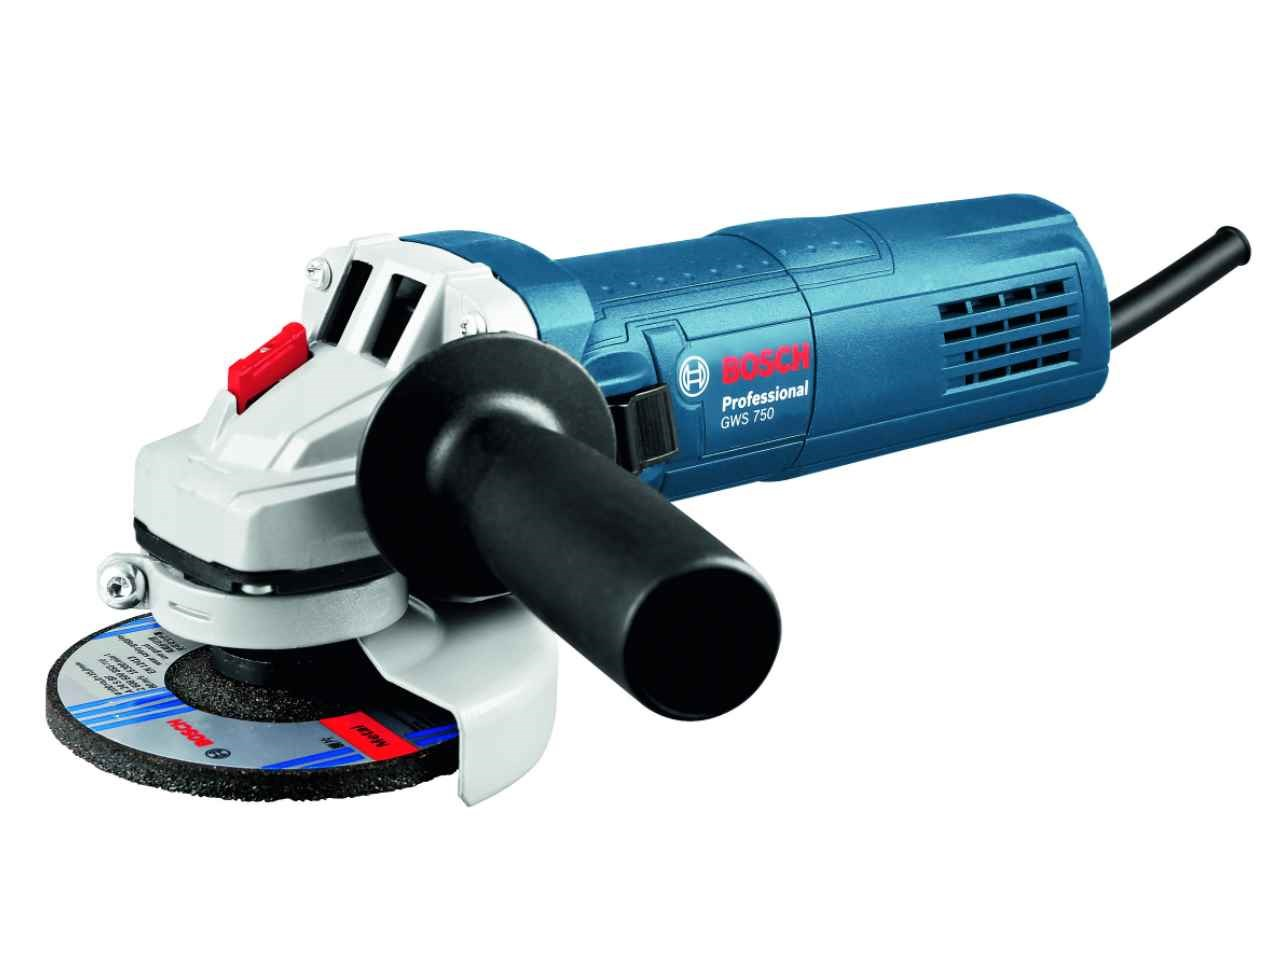 bosch gws 750 240v professional corded angle grinder 115mm. Black Bedroom Furniture Sets. Home Design Ideas